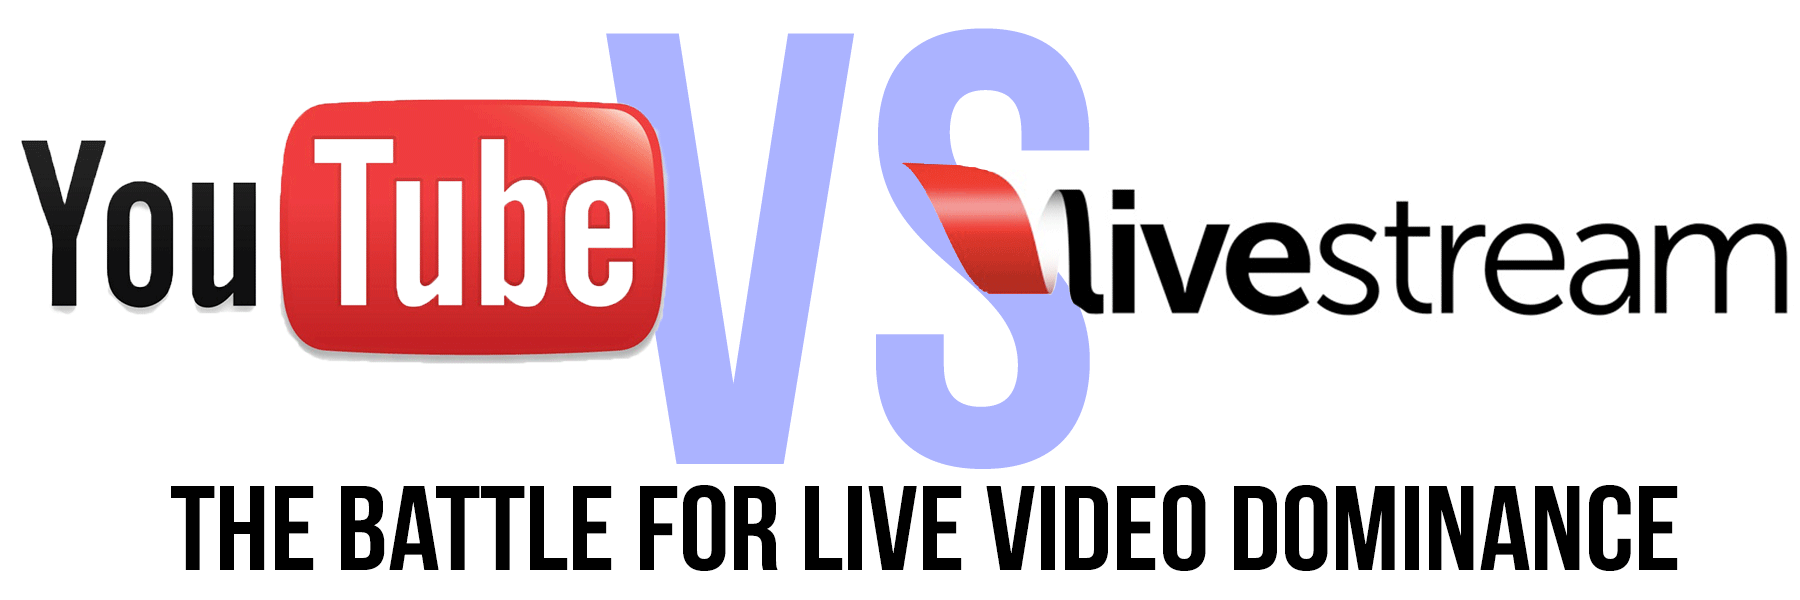 ustream live stream comparison essay